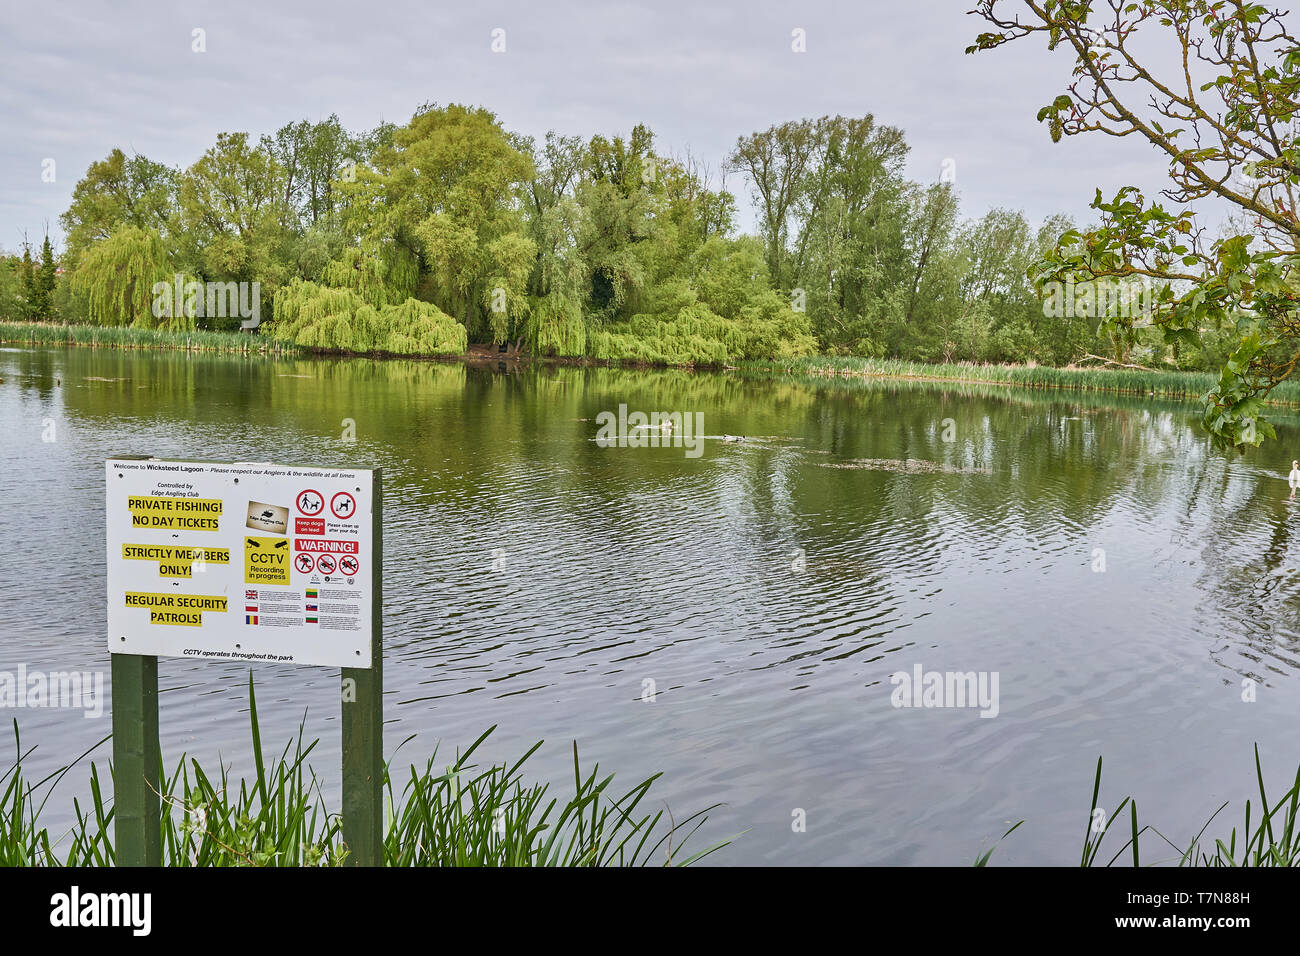 Warning that fishing in the lake is private with no day tickets and for members only at Wickstead park, Kettering, England. - Stock Image